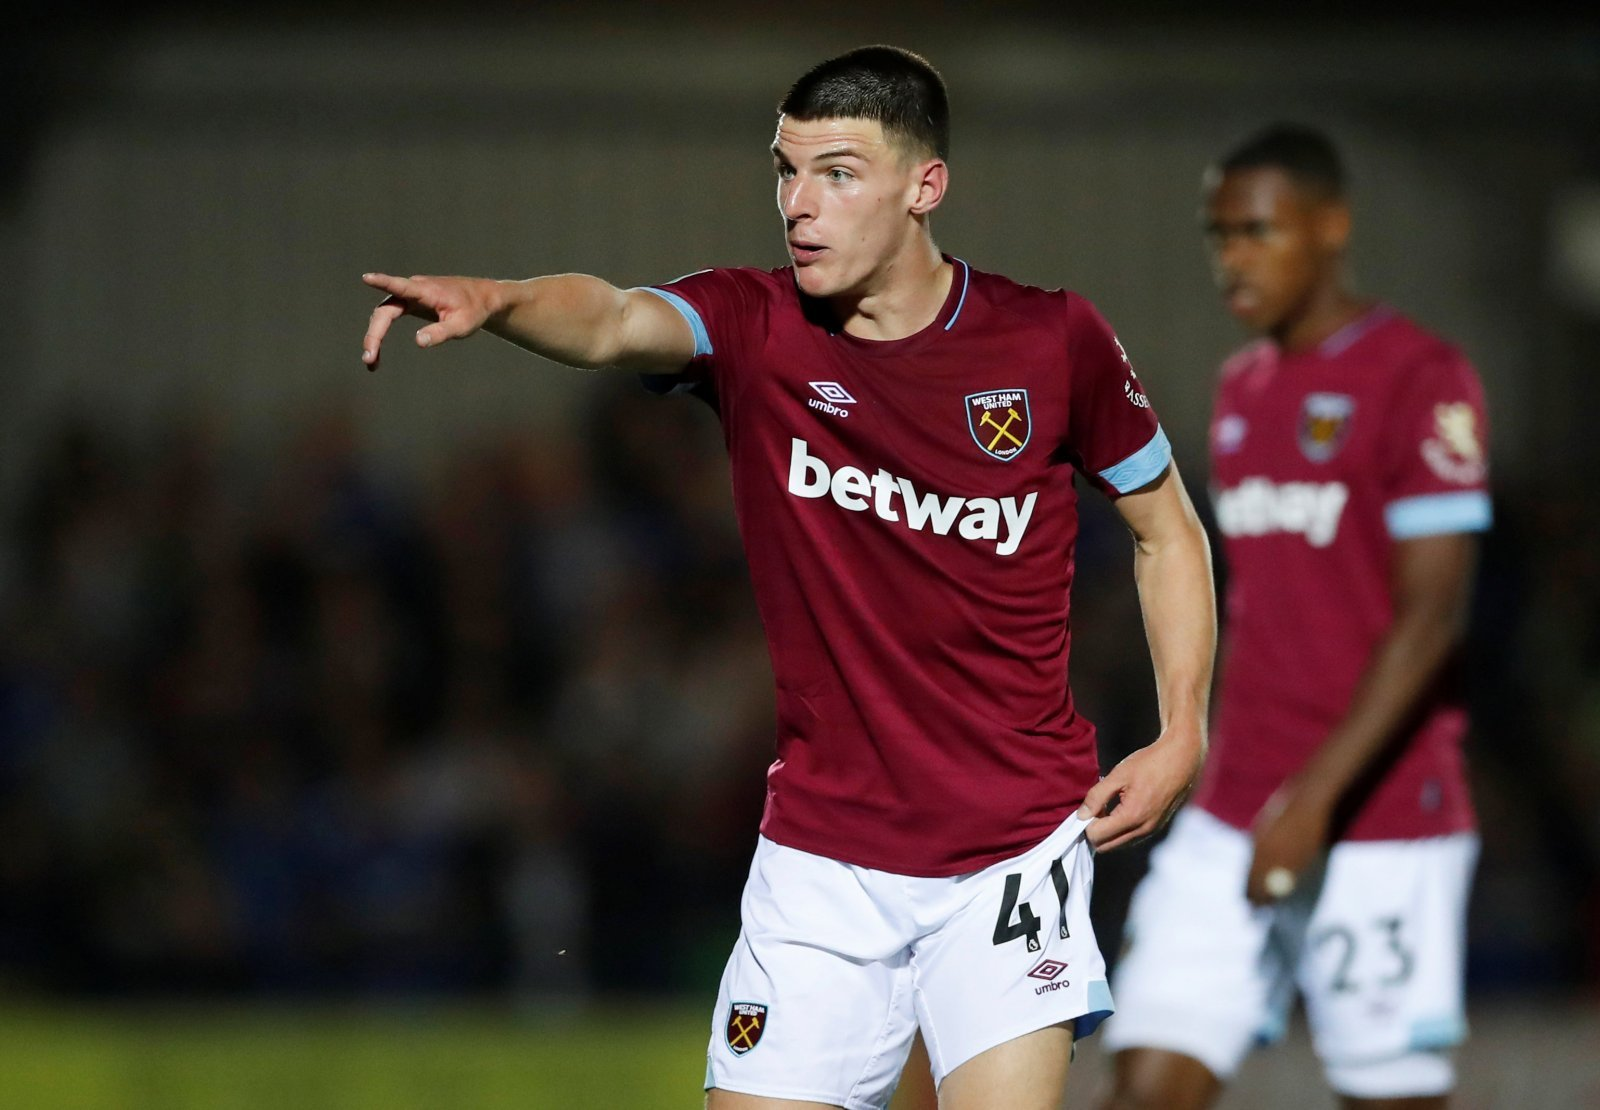 West Ham fans on Twitter want to see Rice extend his deal after Spurs' comments